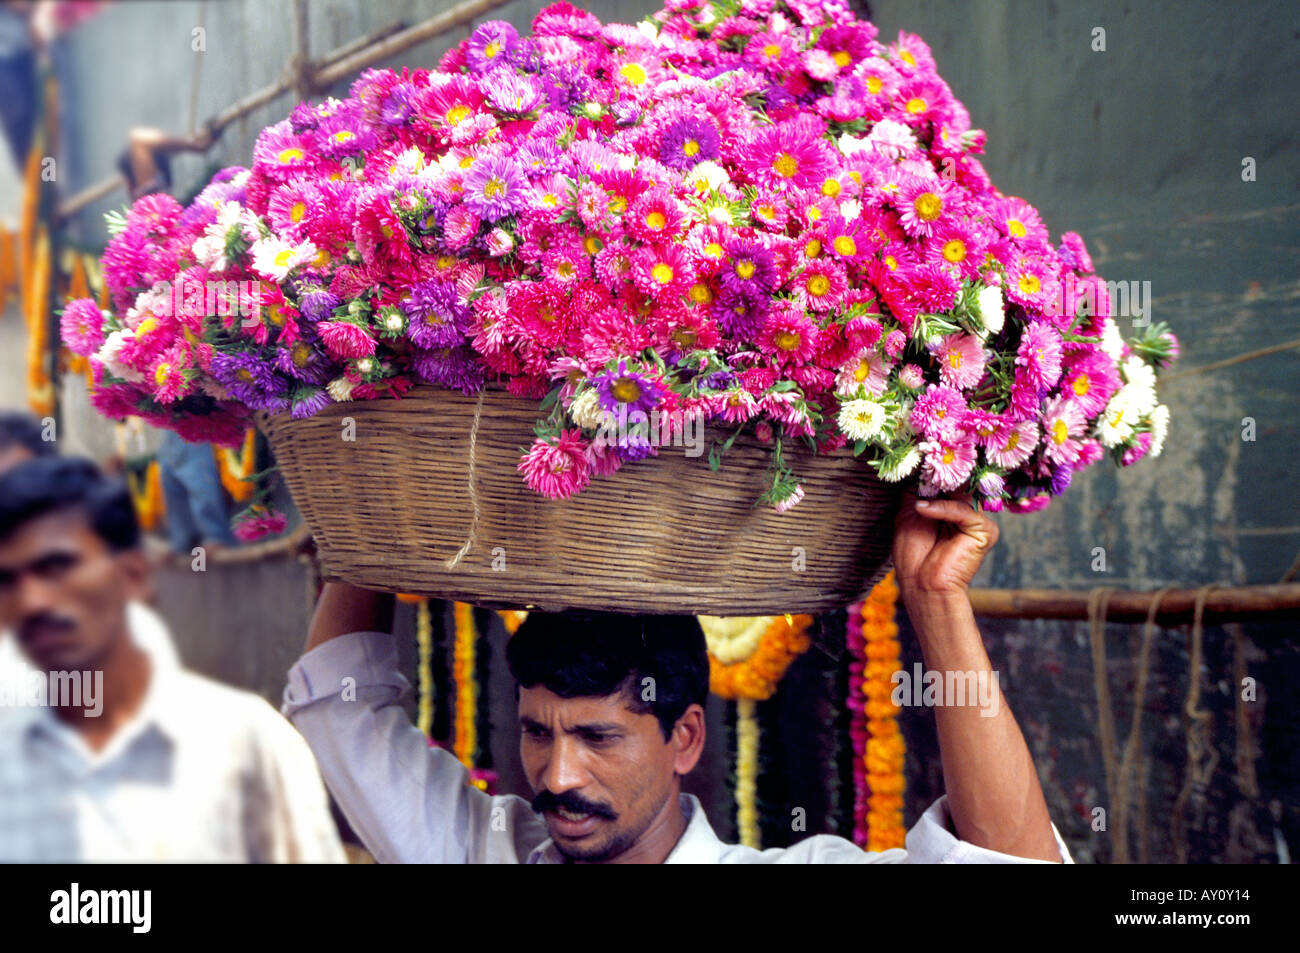 Flower Bouquets India Stock Photos & Flower Bouquets India Stock ...